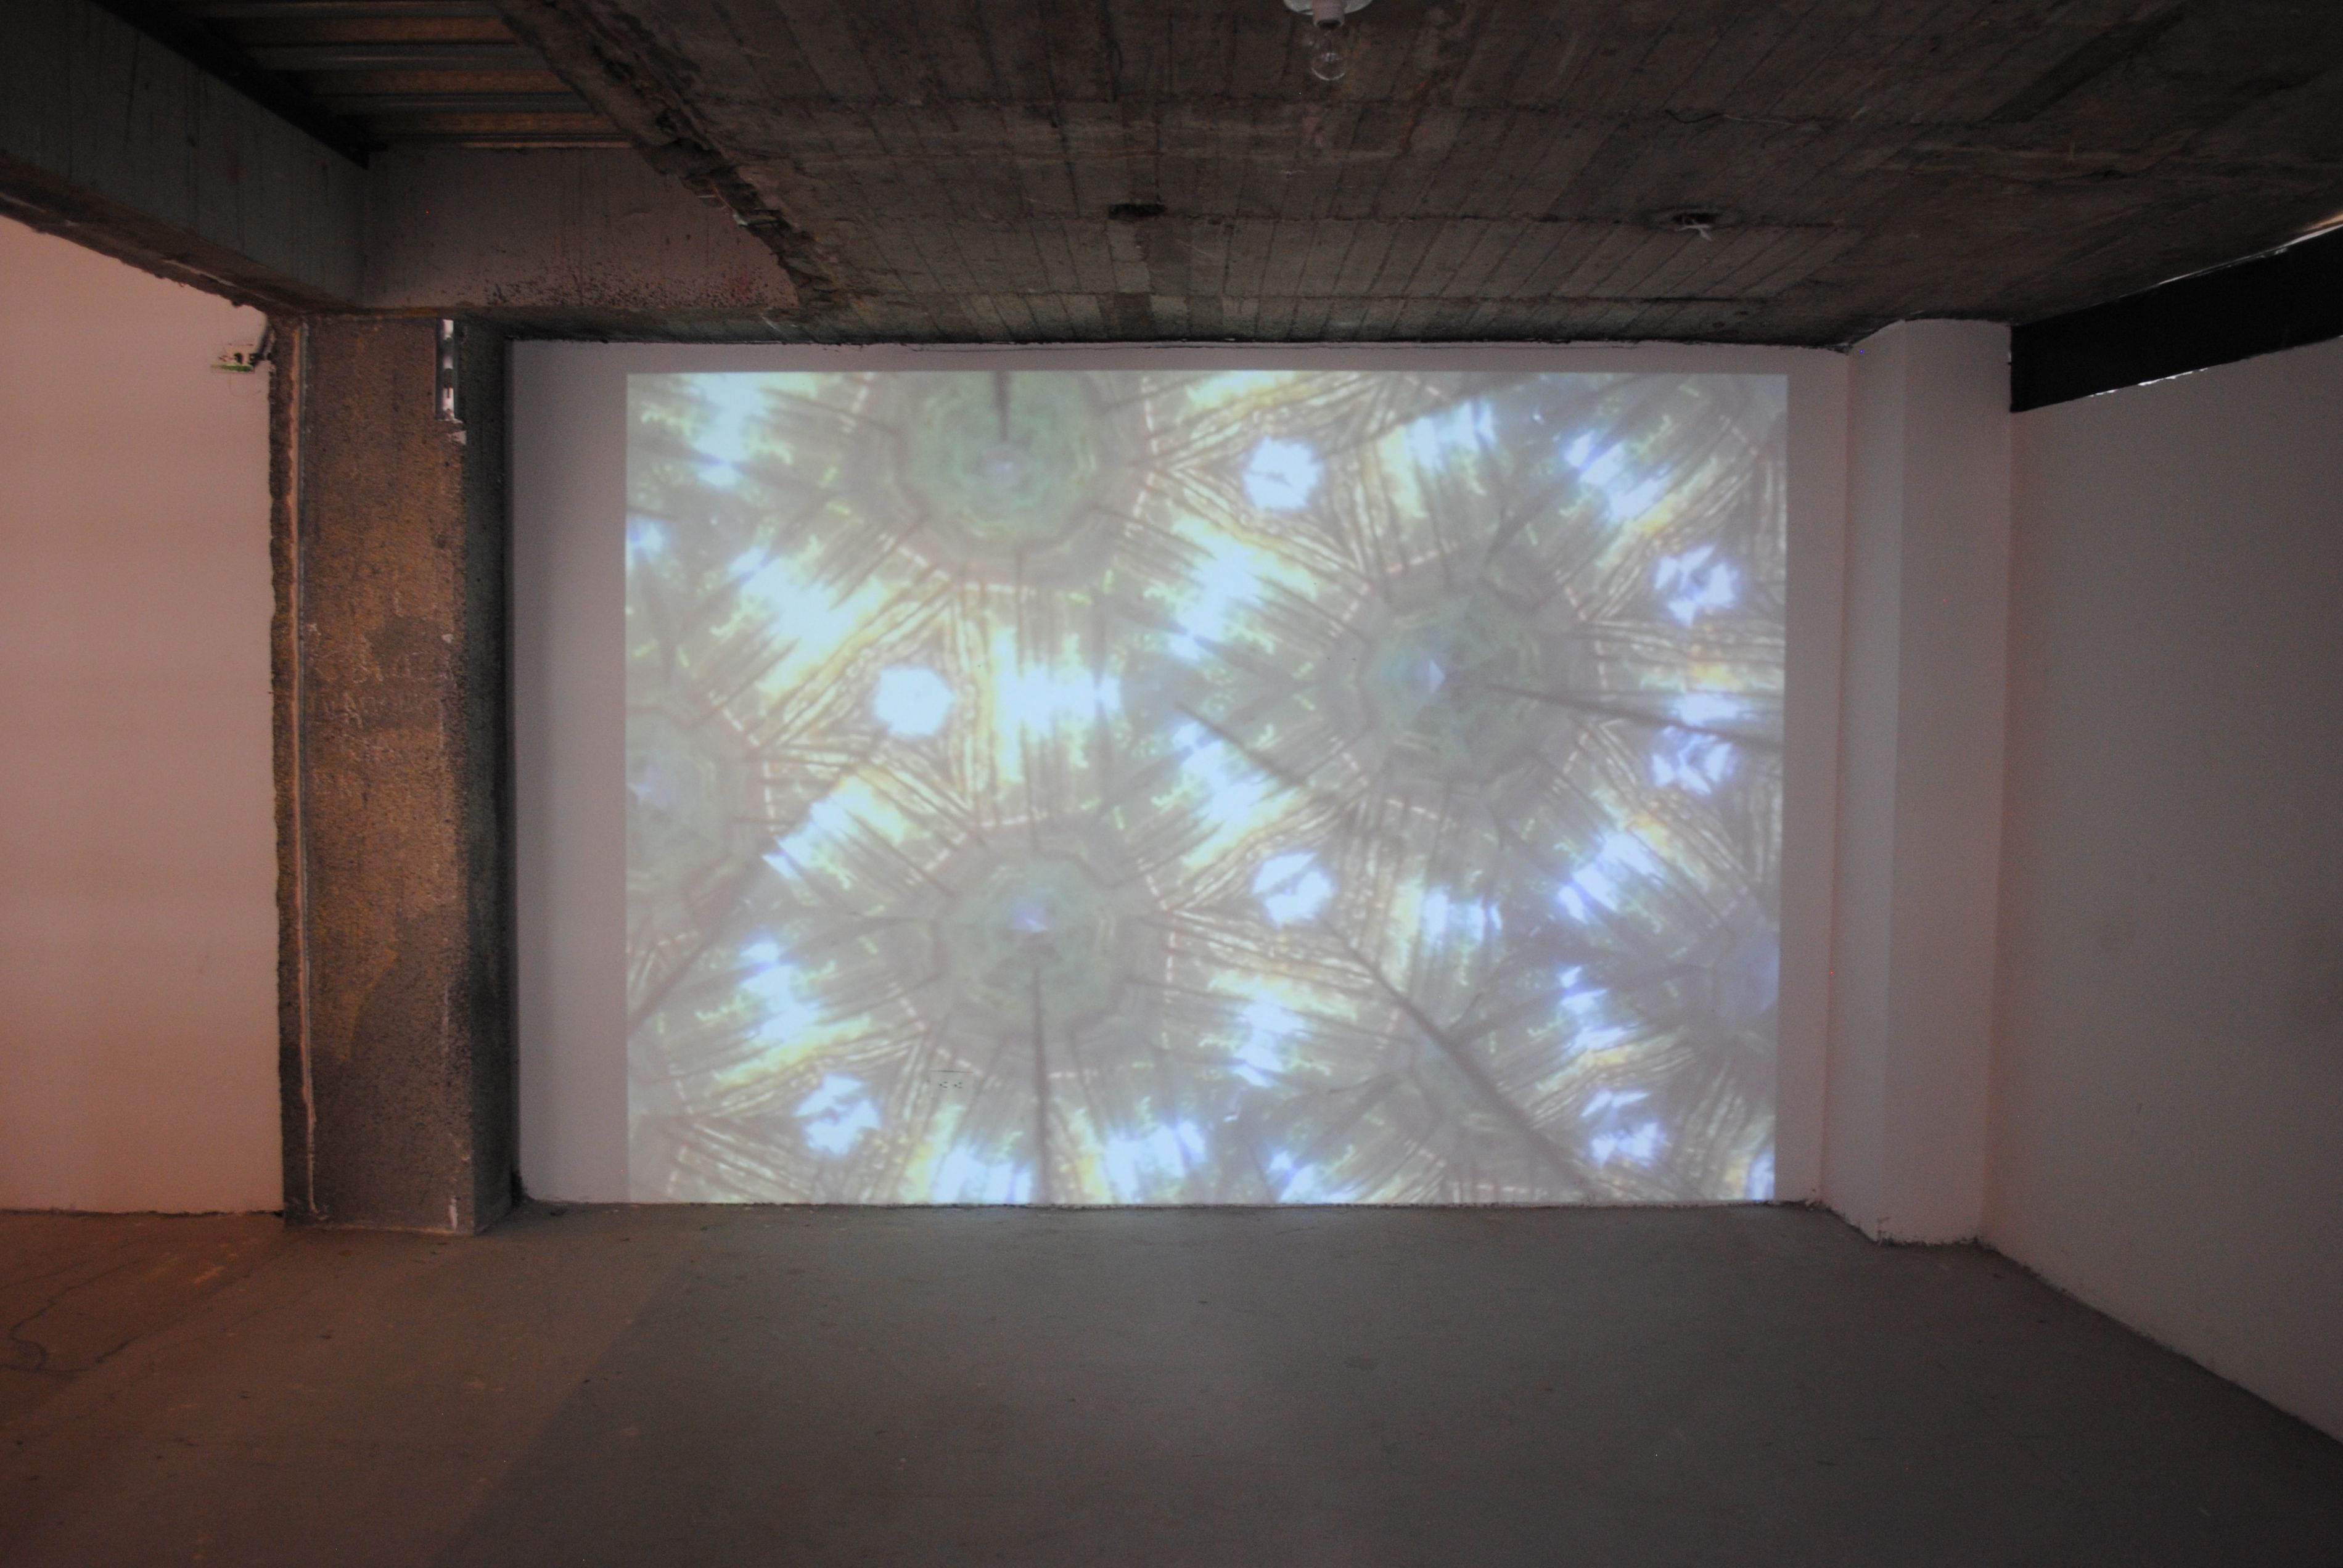 GVA-BOG- Alexandre Joly Video Projection - Exhibition curated by artist Lucia Moure